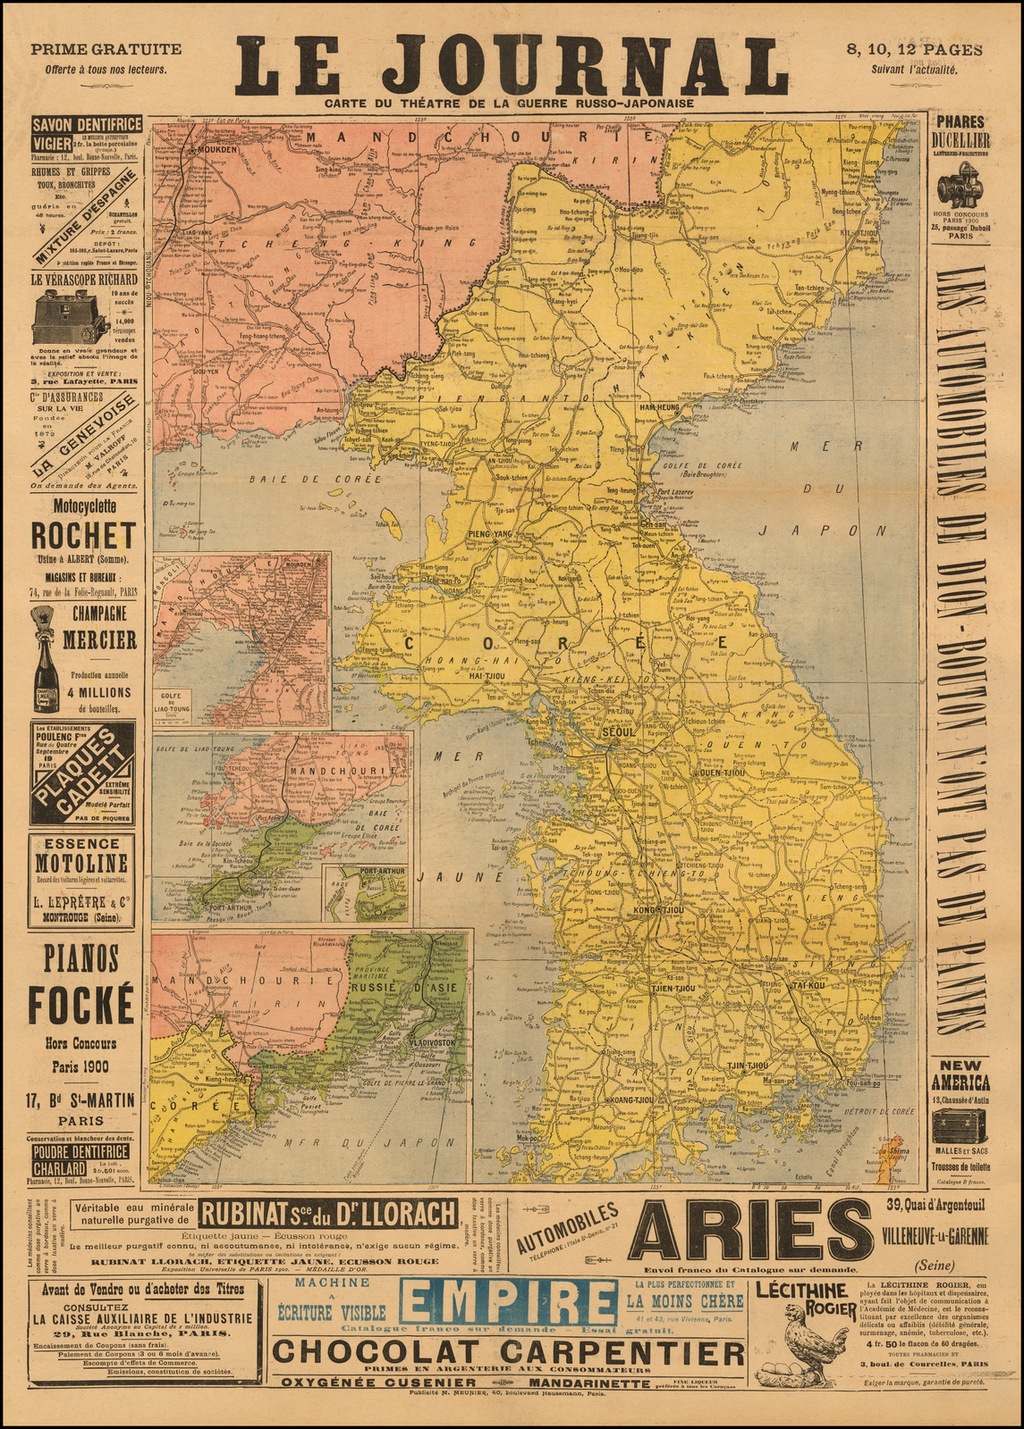 Carte Du Theatre de la Guerre Russo-Japonaise (French Automobile and Cycling Map of the verso) By Librairie Universelle